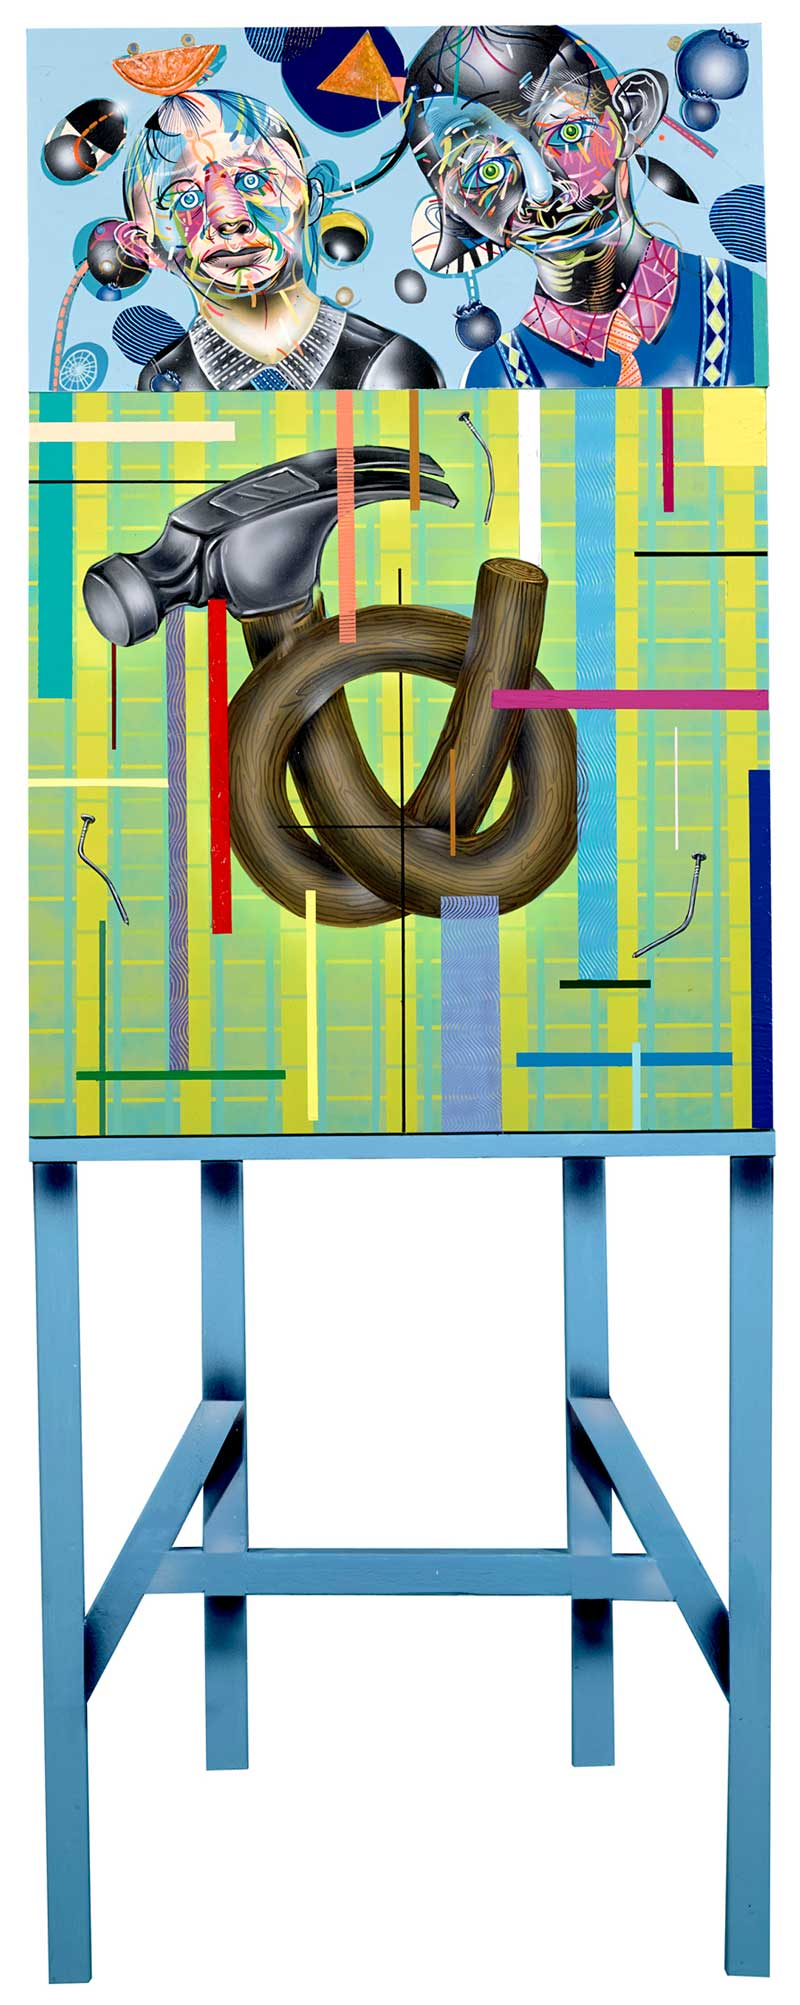 Clayton Brothers, Pull And Pick, 2013, mixed media on wood panel, 157x60 cm